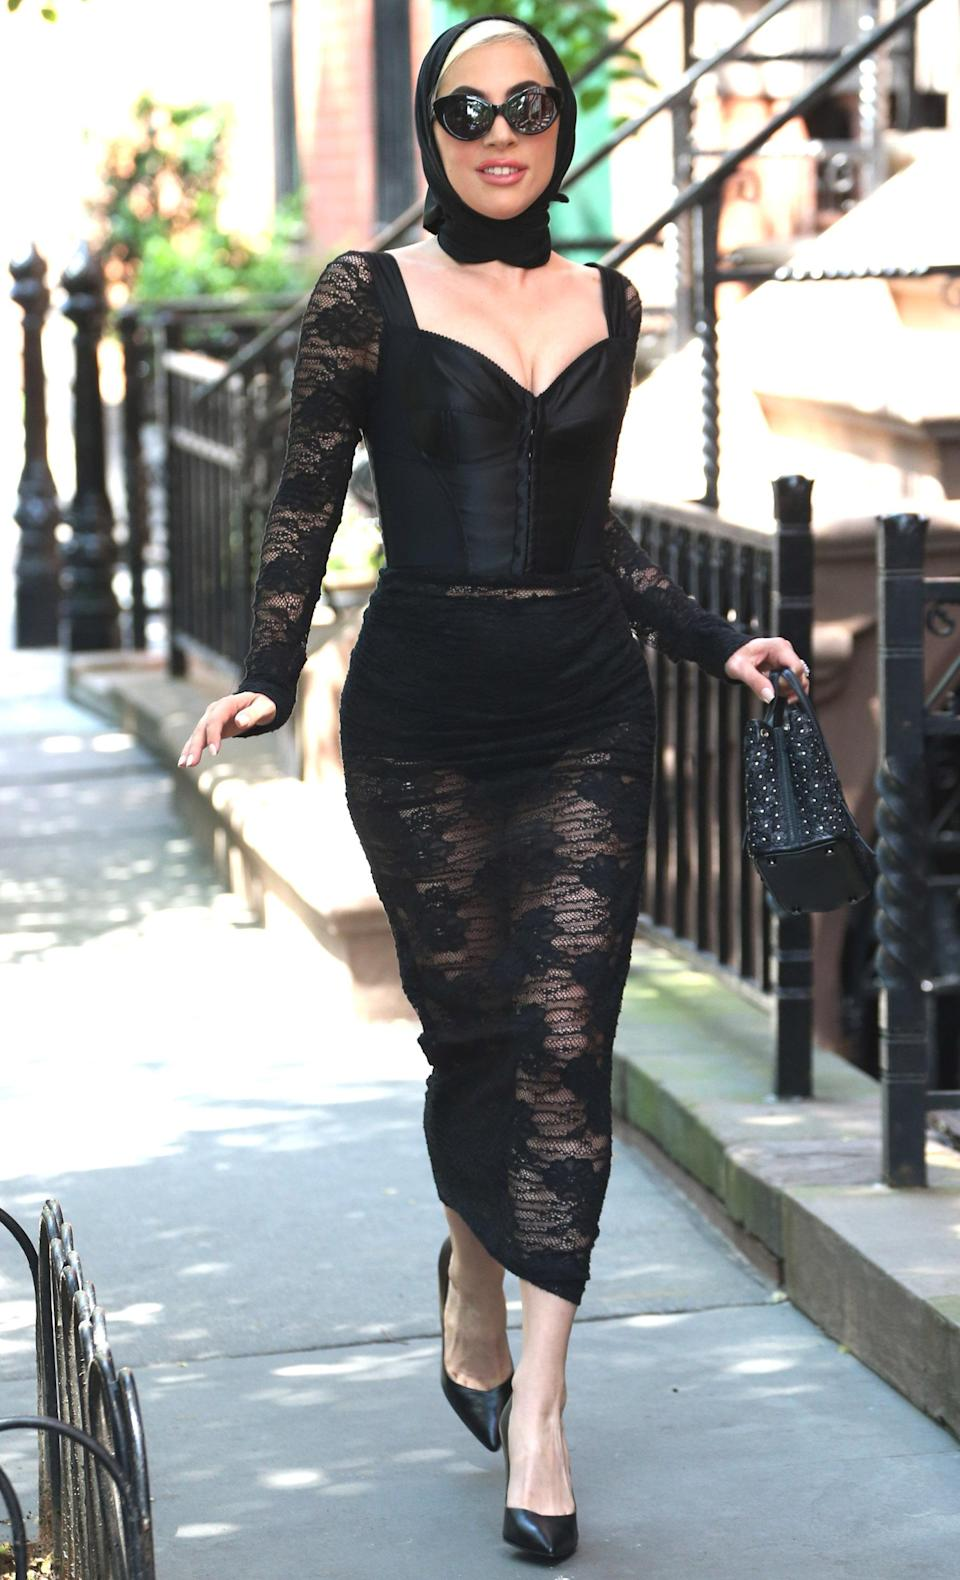 <p>Finally, she finished the four days in a black lace number that gave off what one could only describe as sexy widow vibes. Mourning the end of the weekend, perhaps? [Photo: Rex] </p>